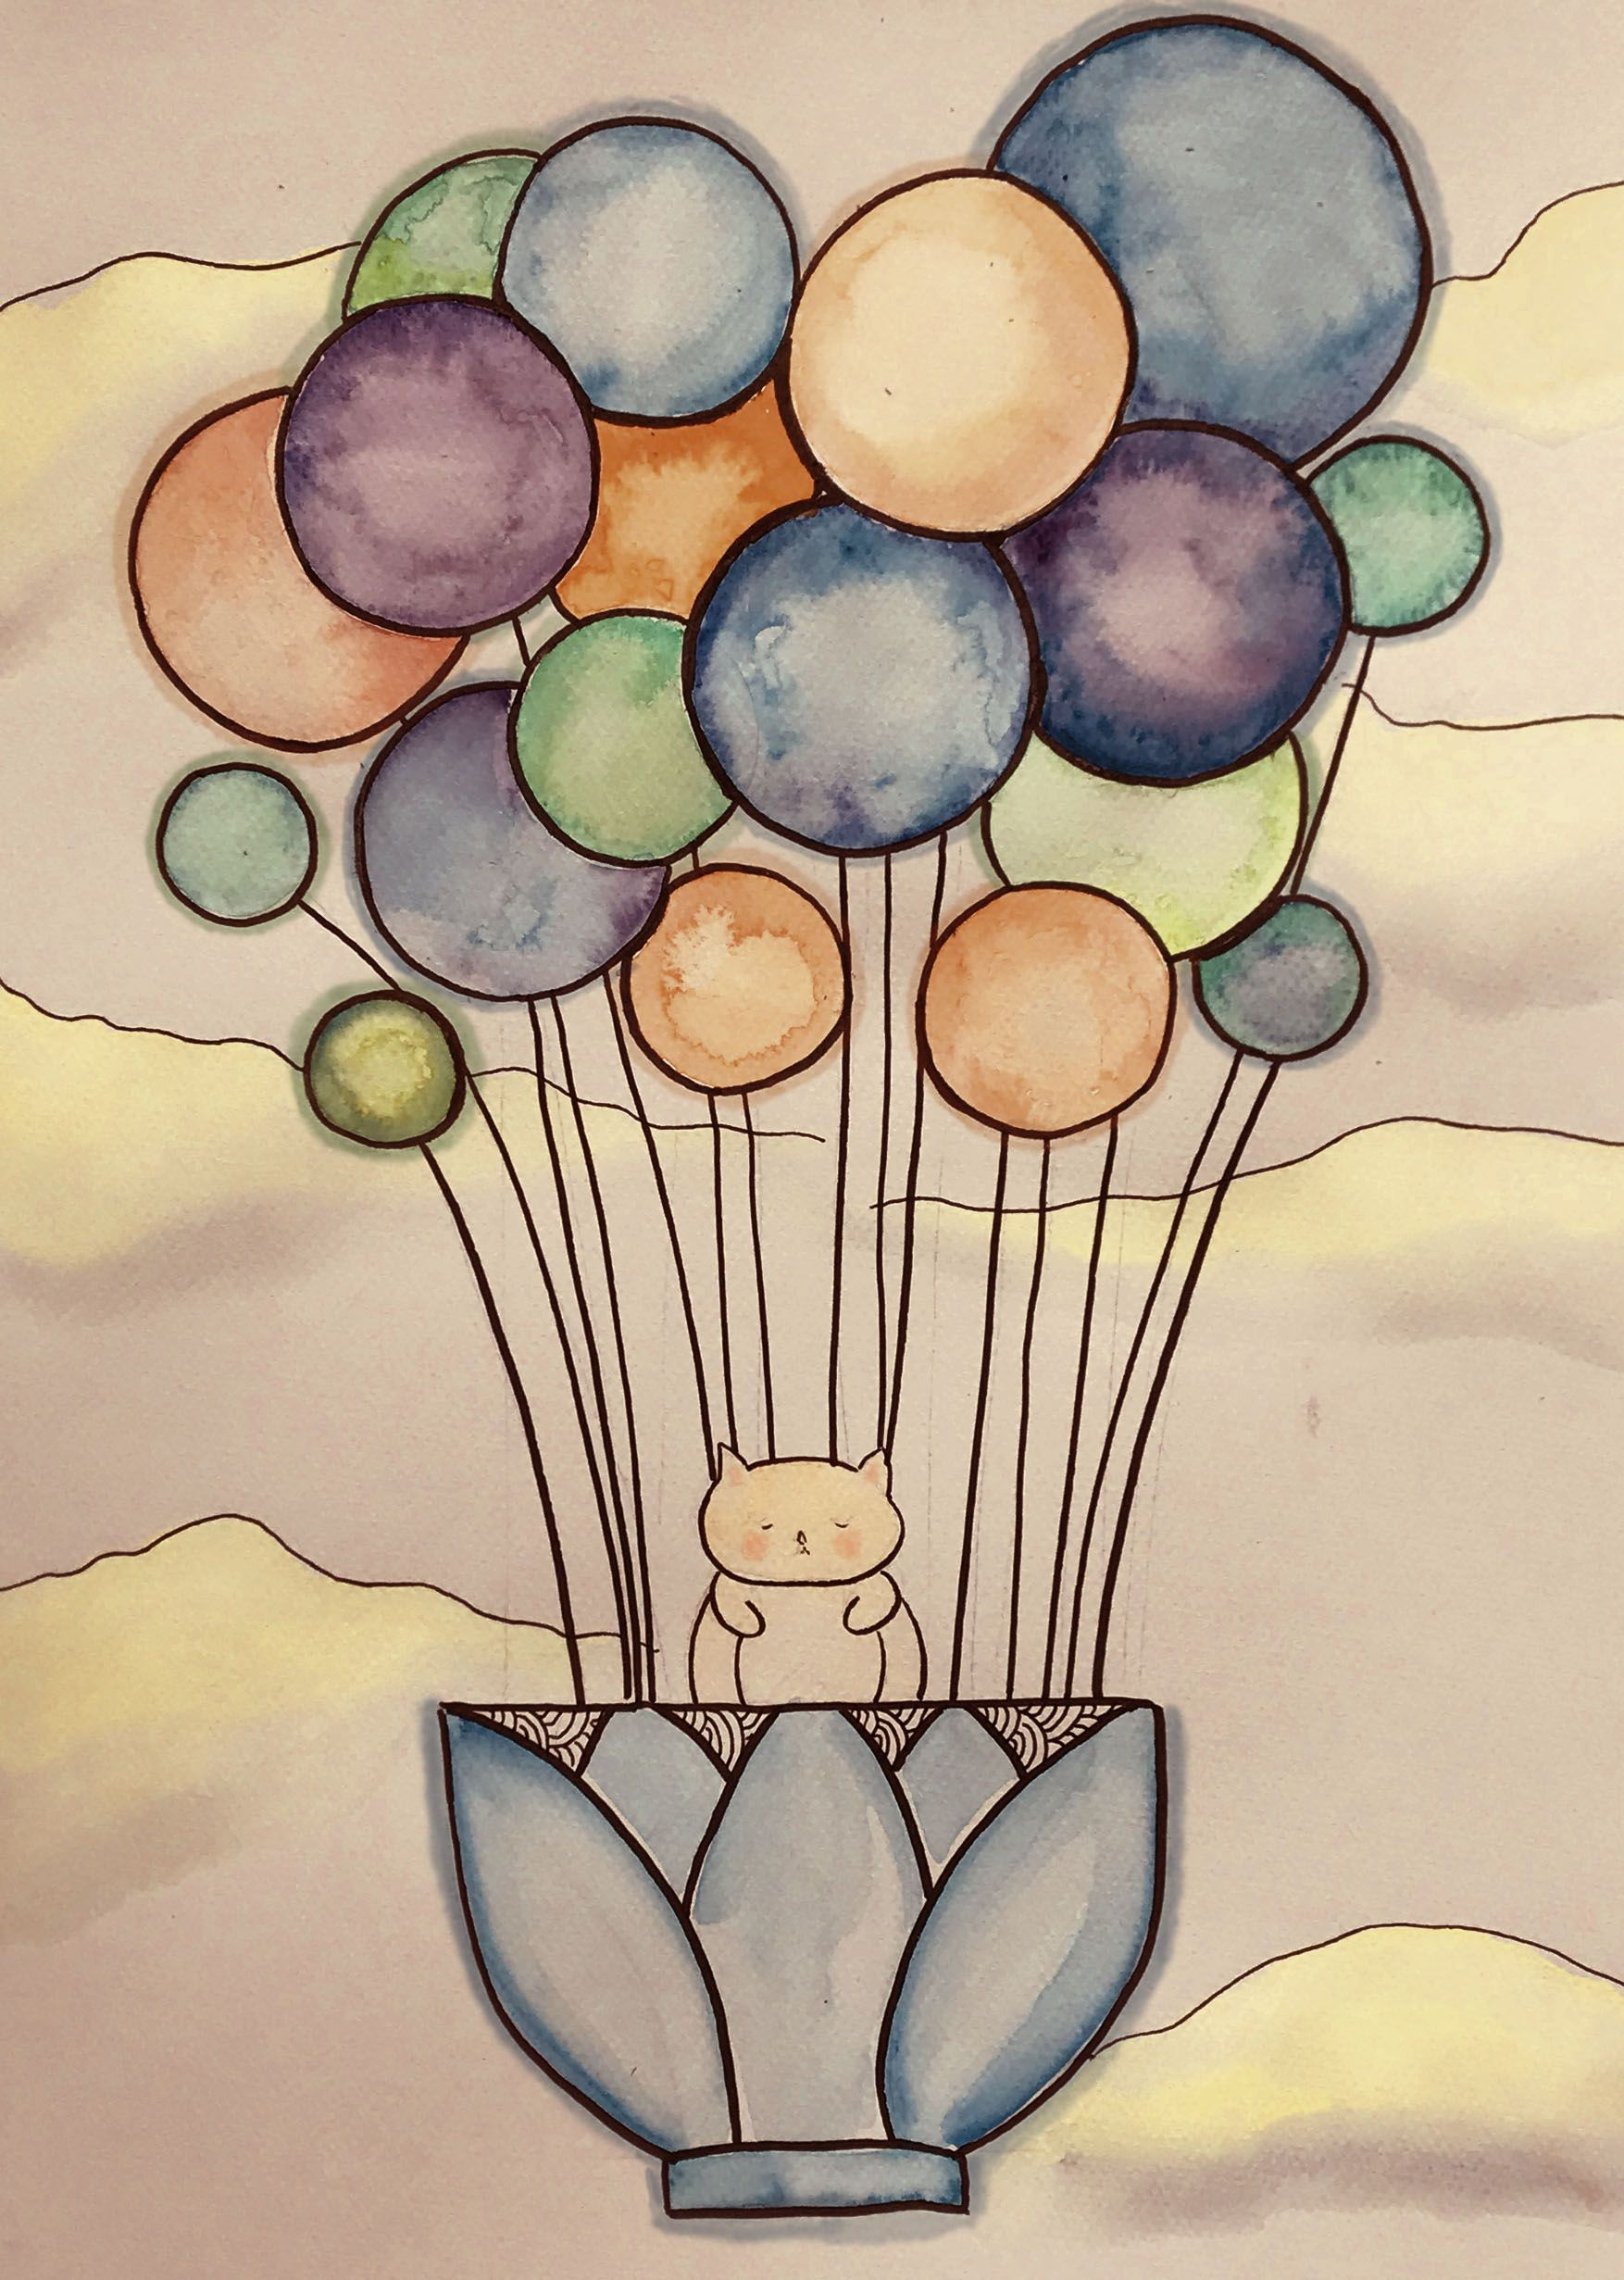 My New Water Color And Digital Artwork Balloons Watercolor